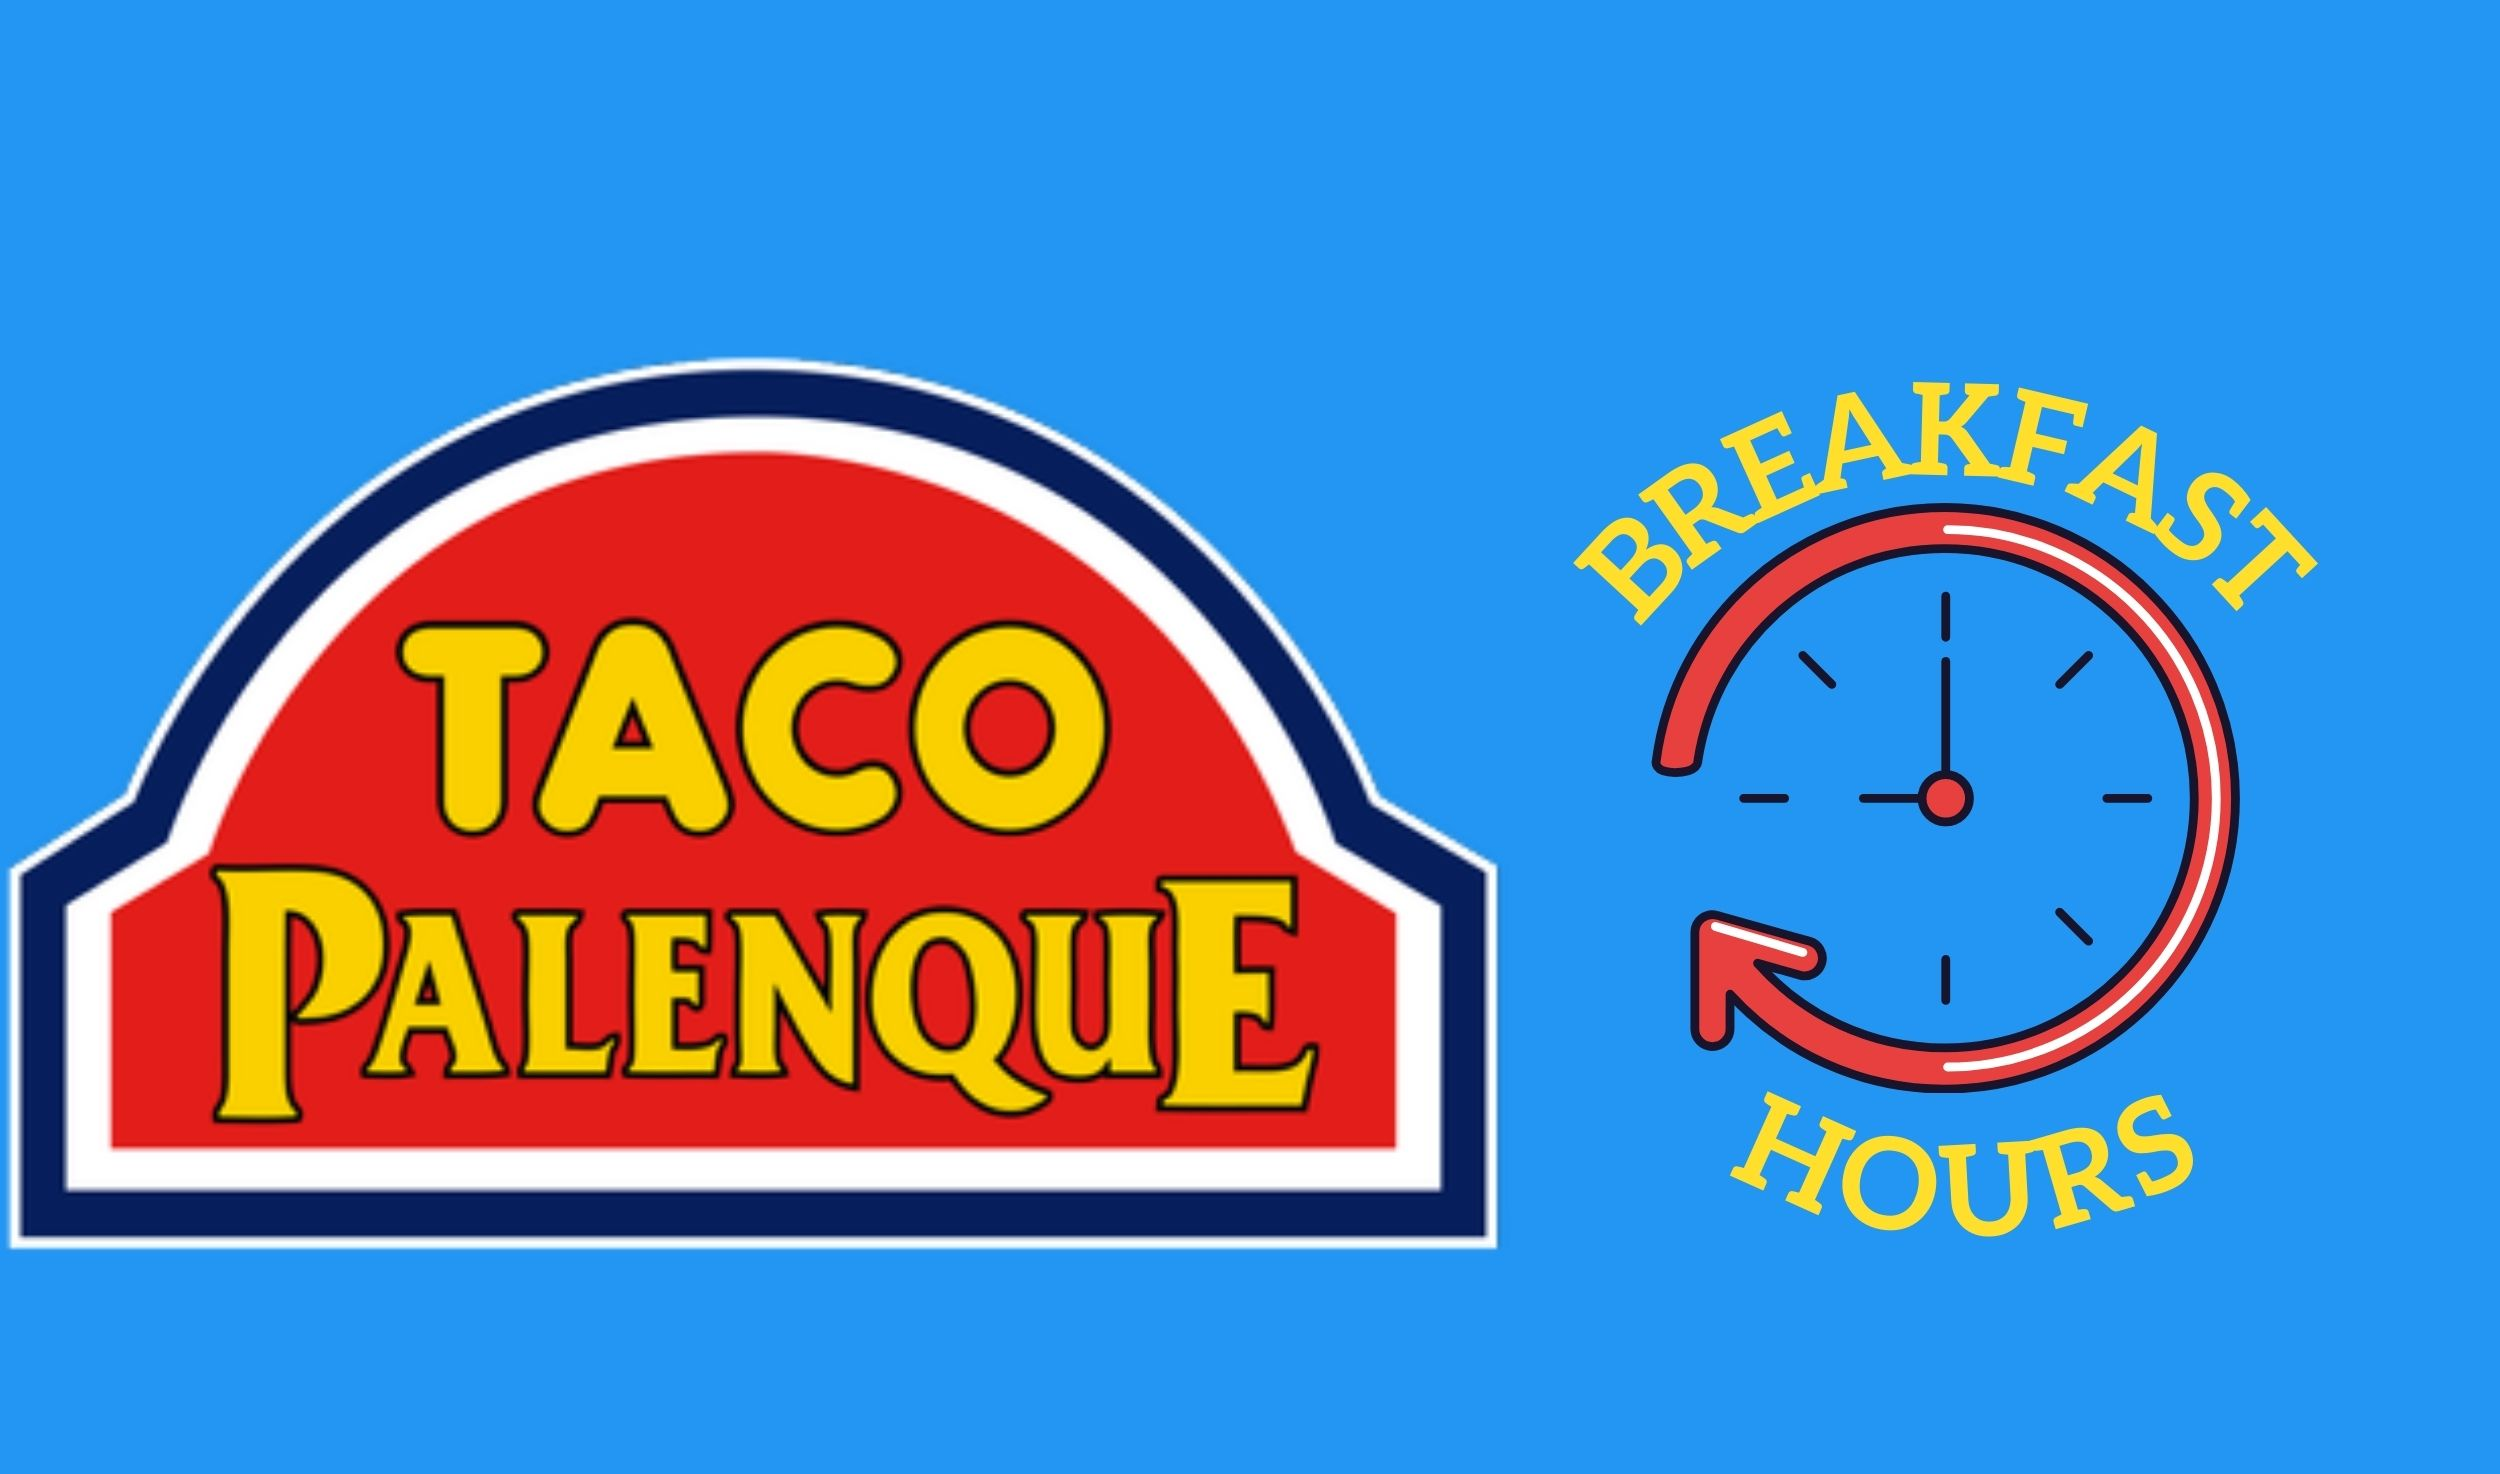 Taco Palenque Breakfast Hours